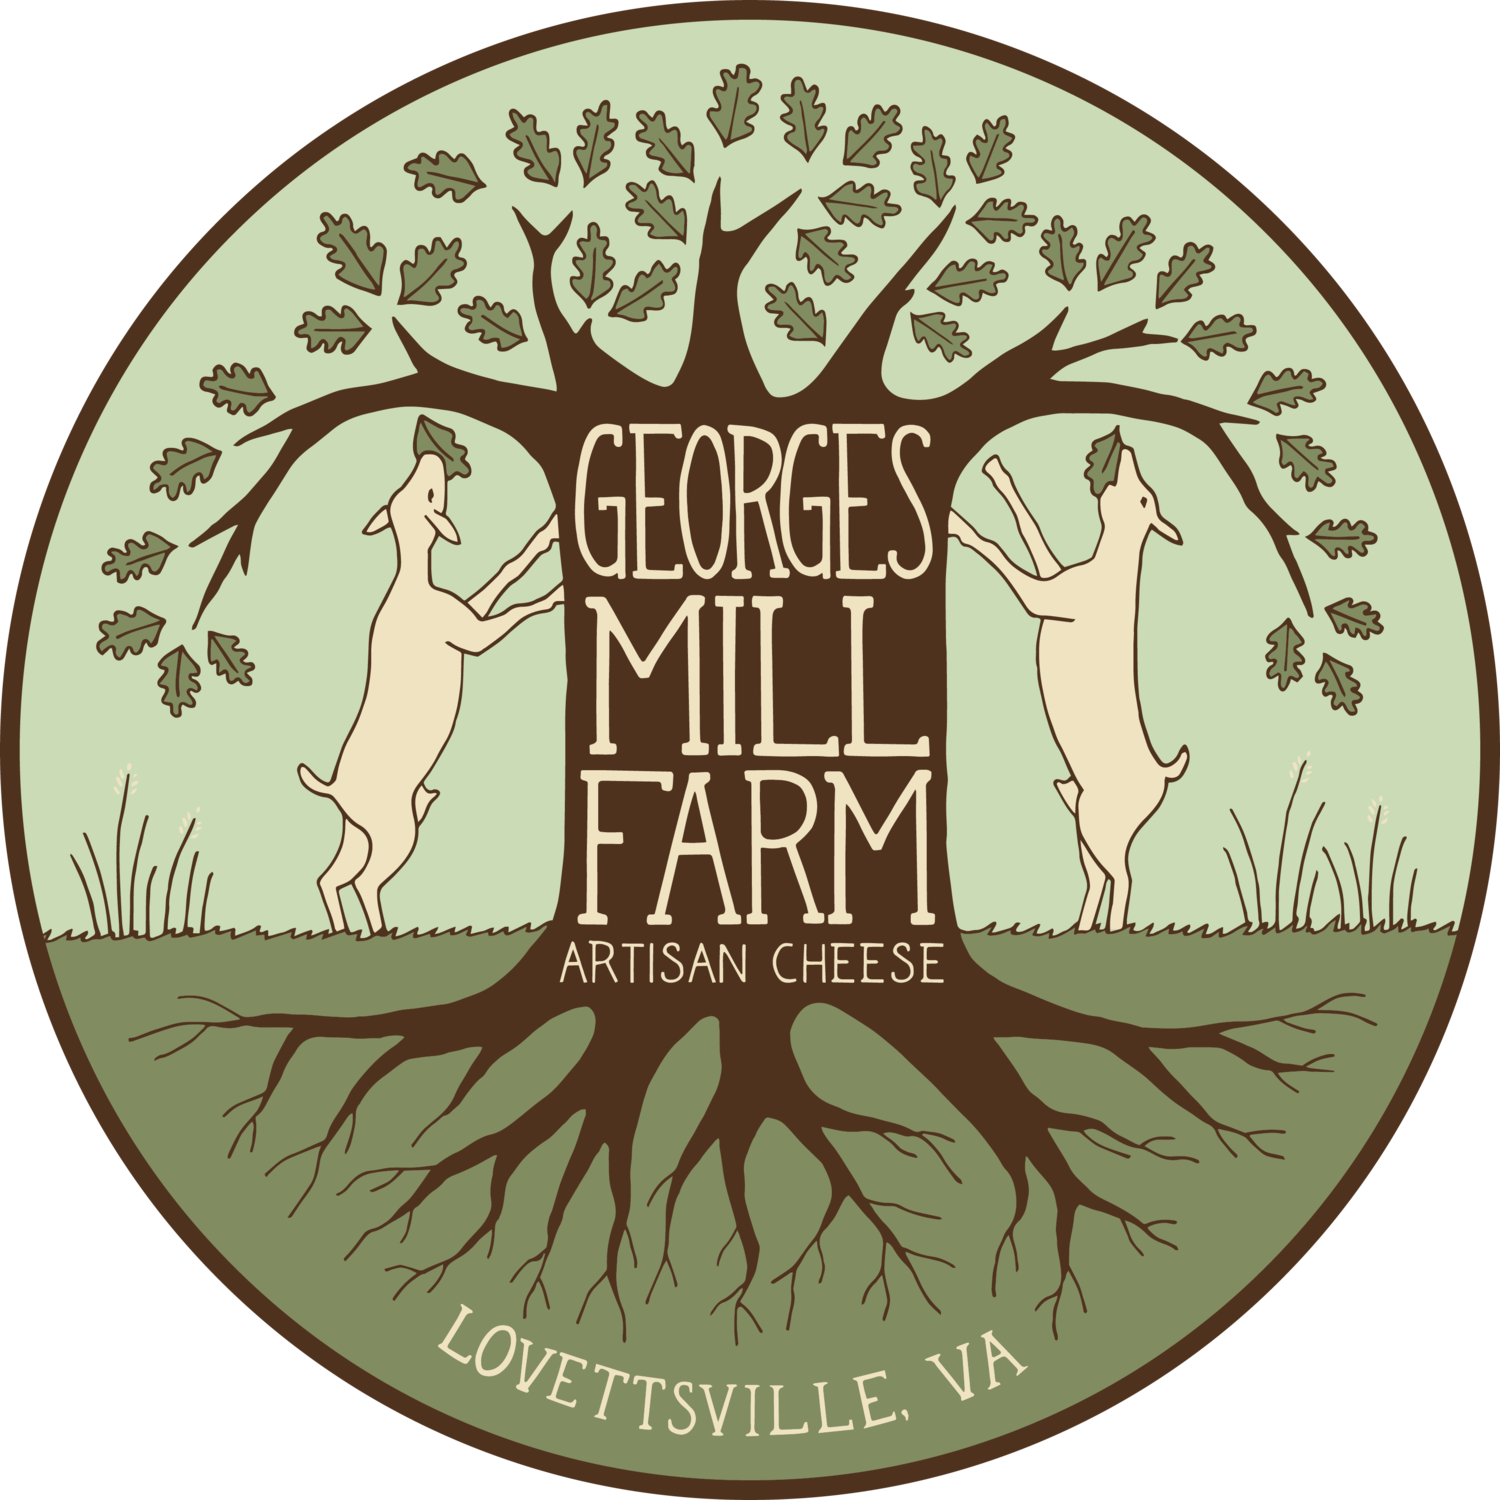 Georges Mill Farm Artisan Cheese